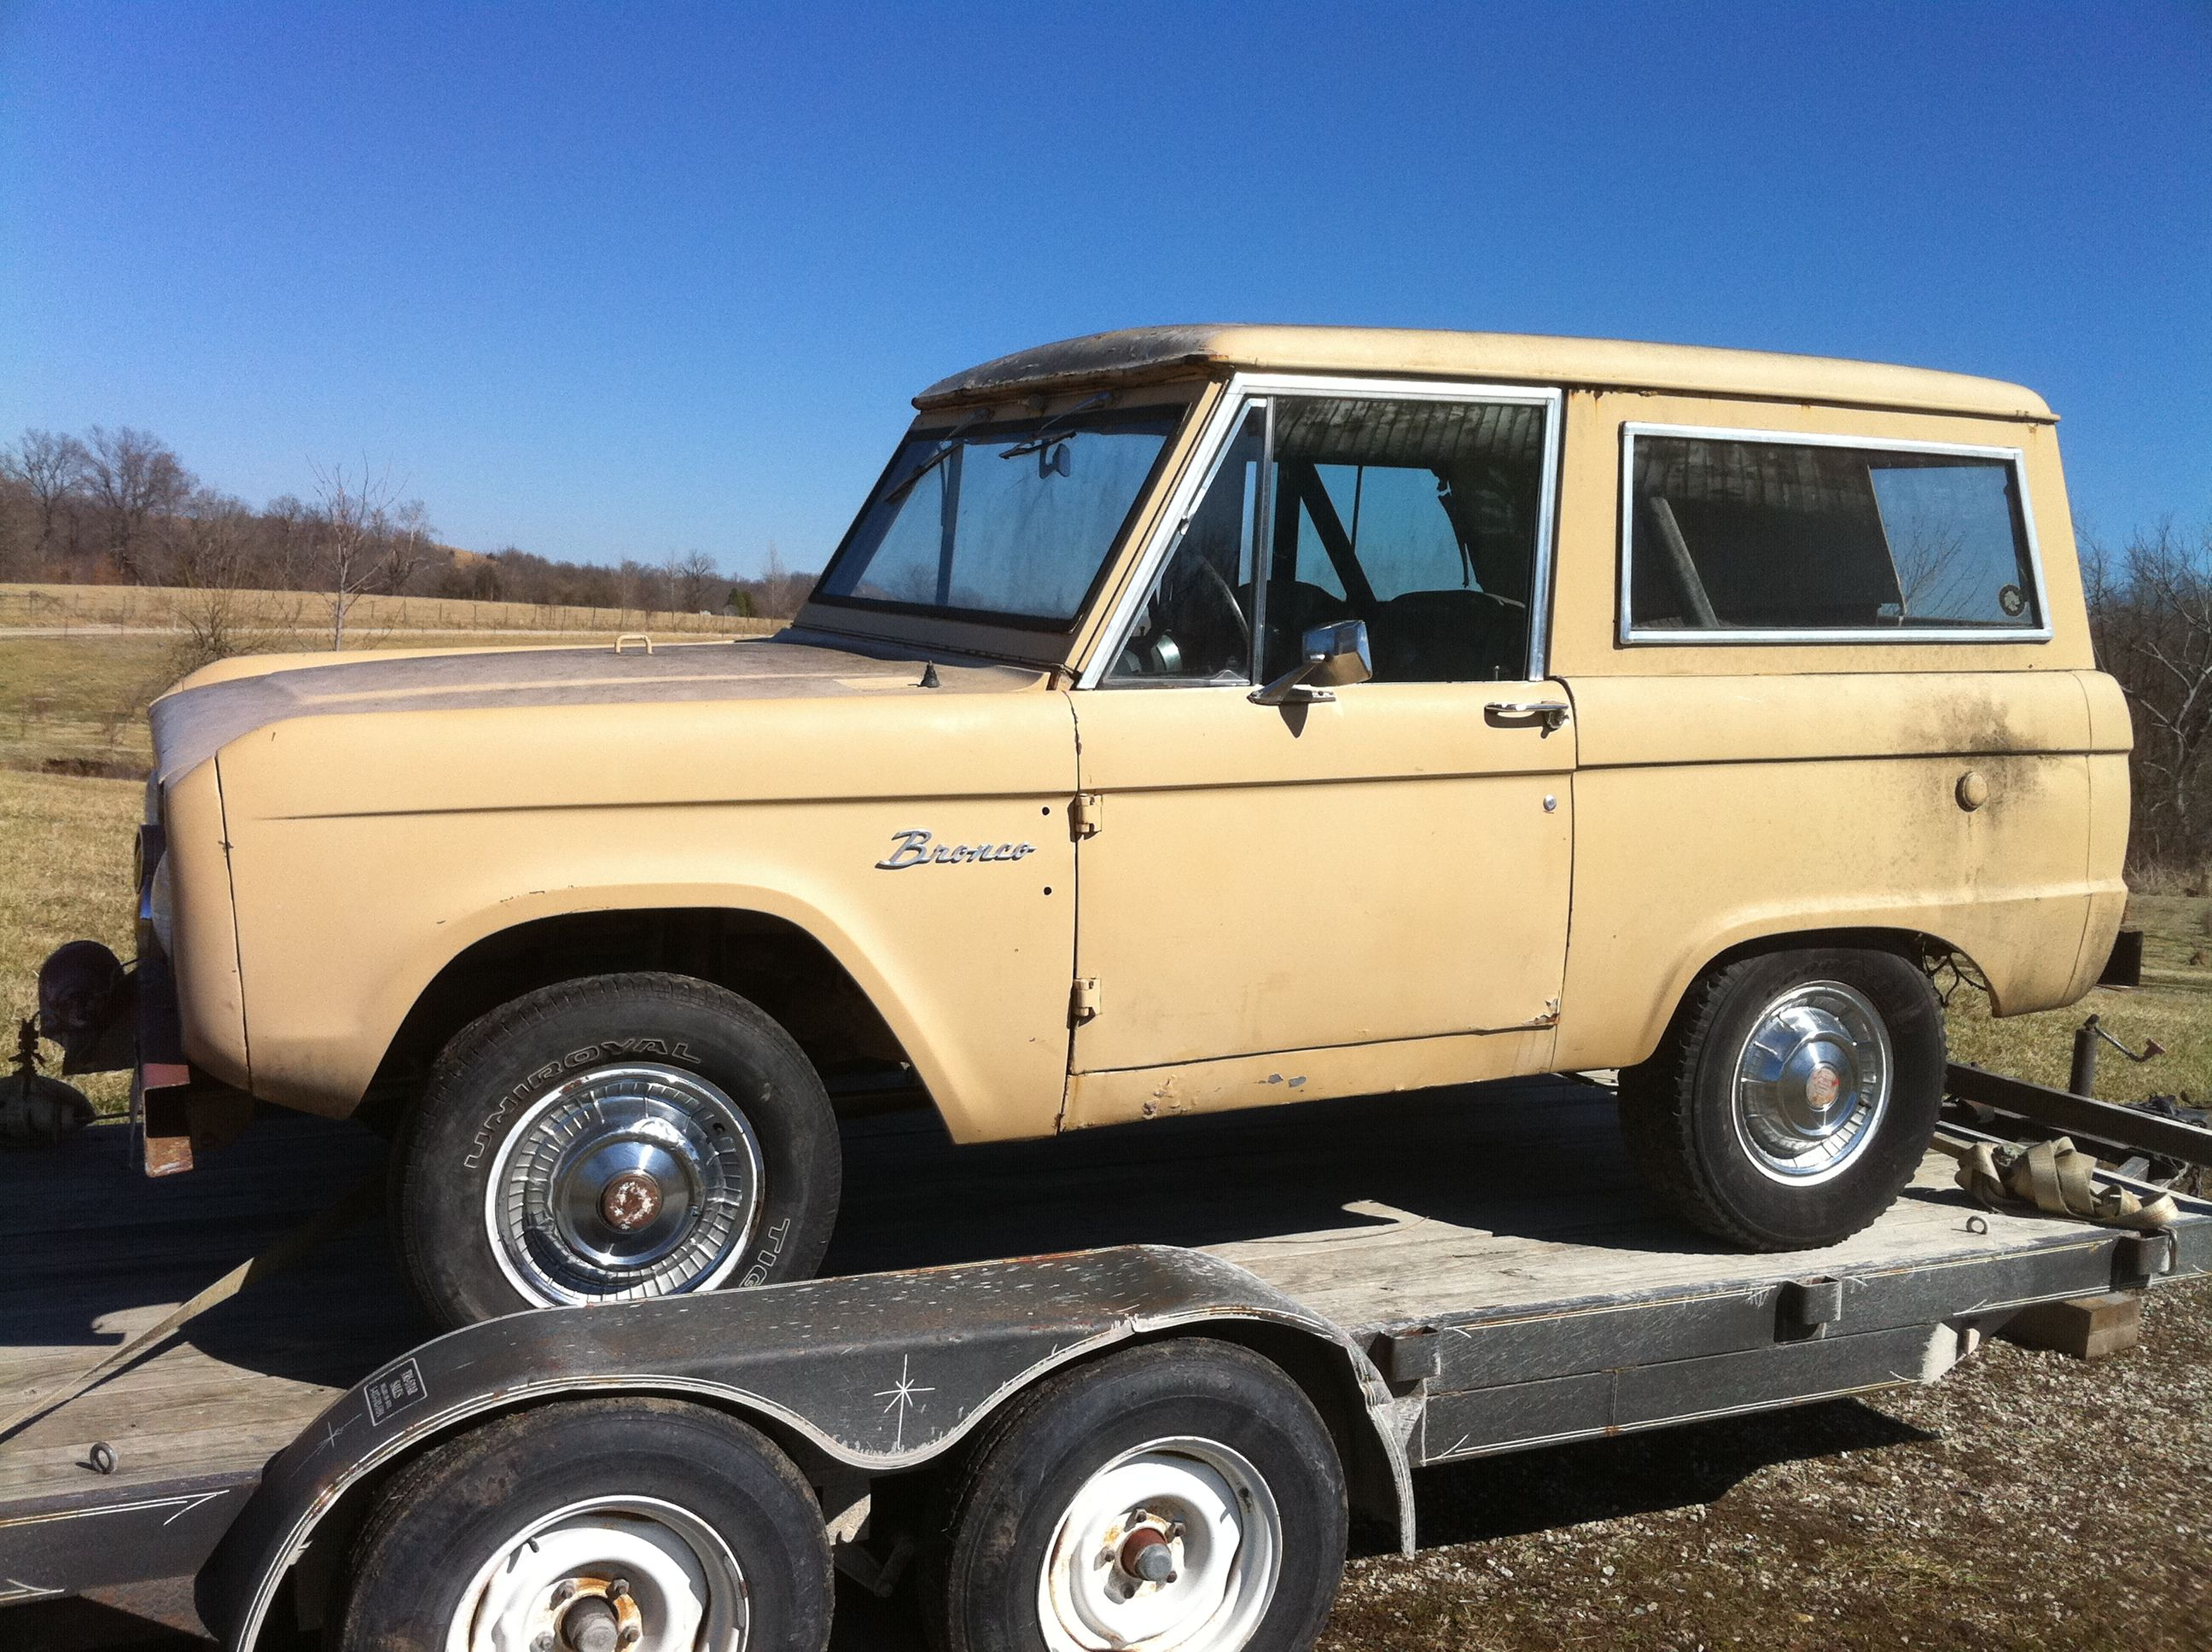 Found This U13 Disguised As A U15 Wagon It Pays To Check Out The